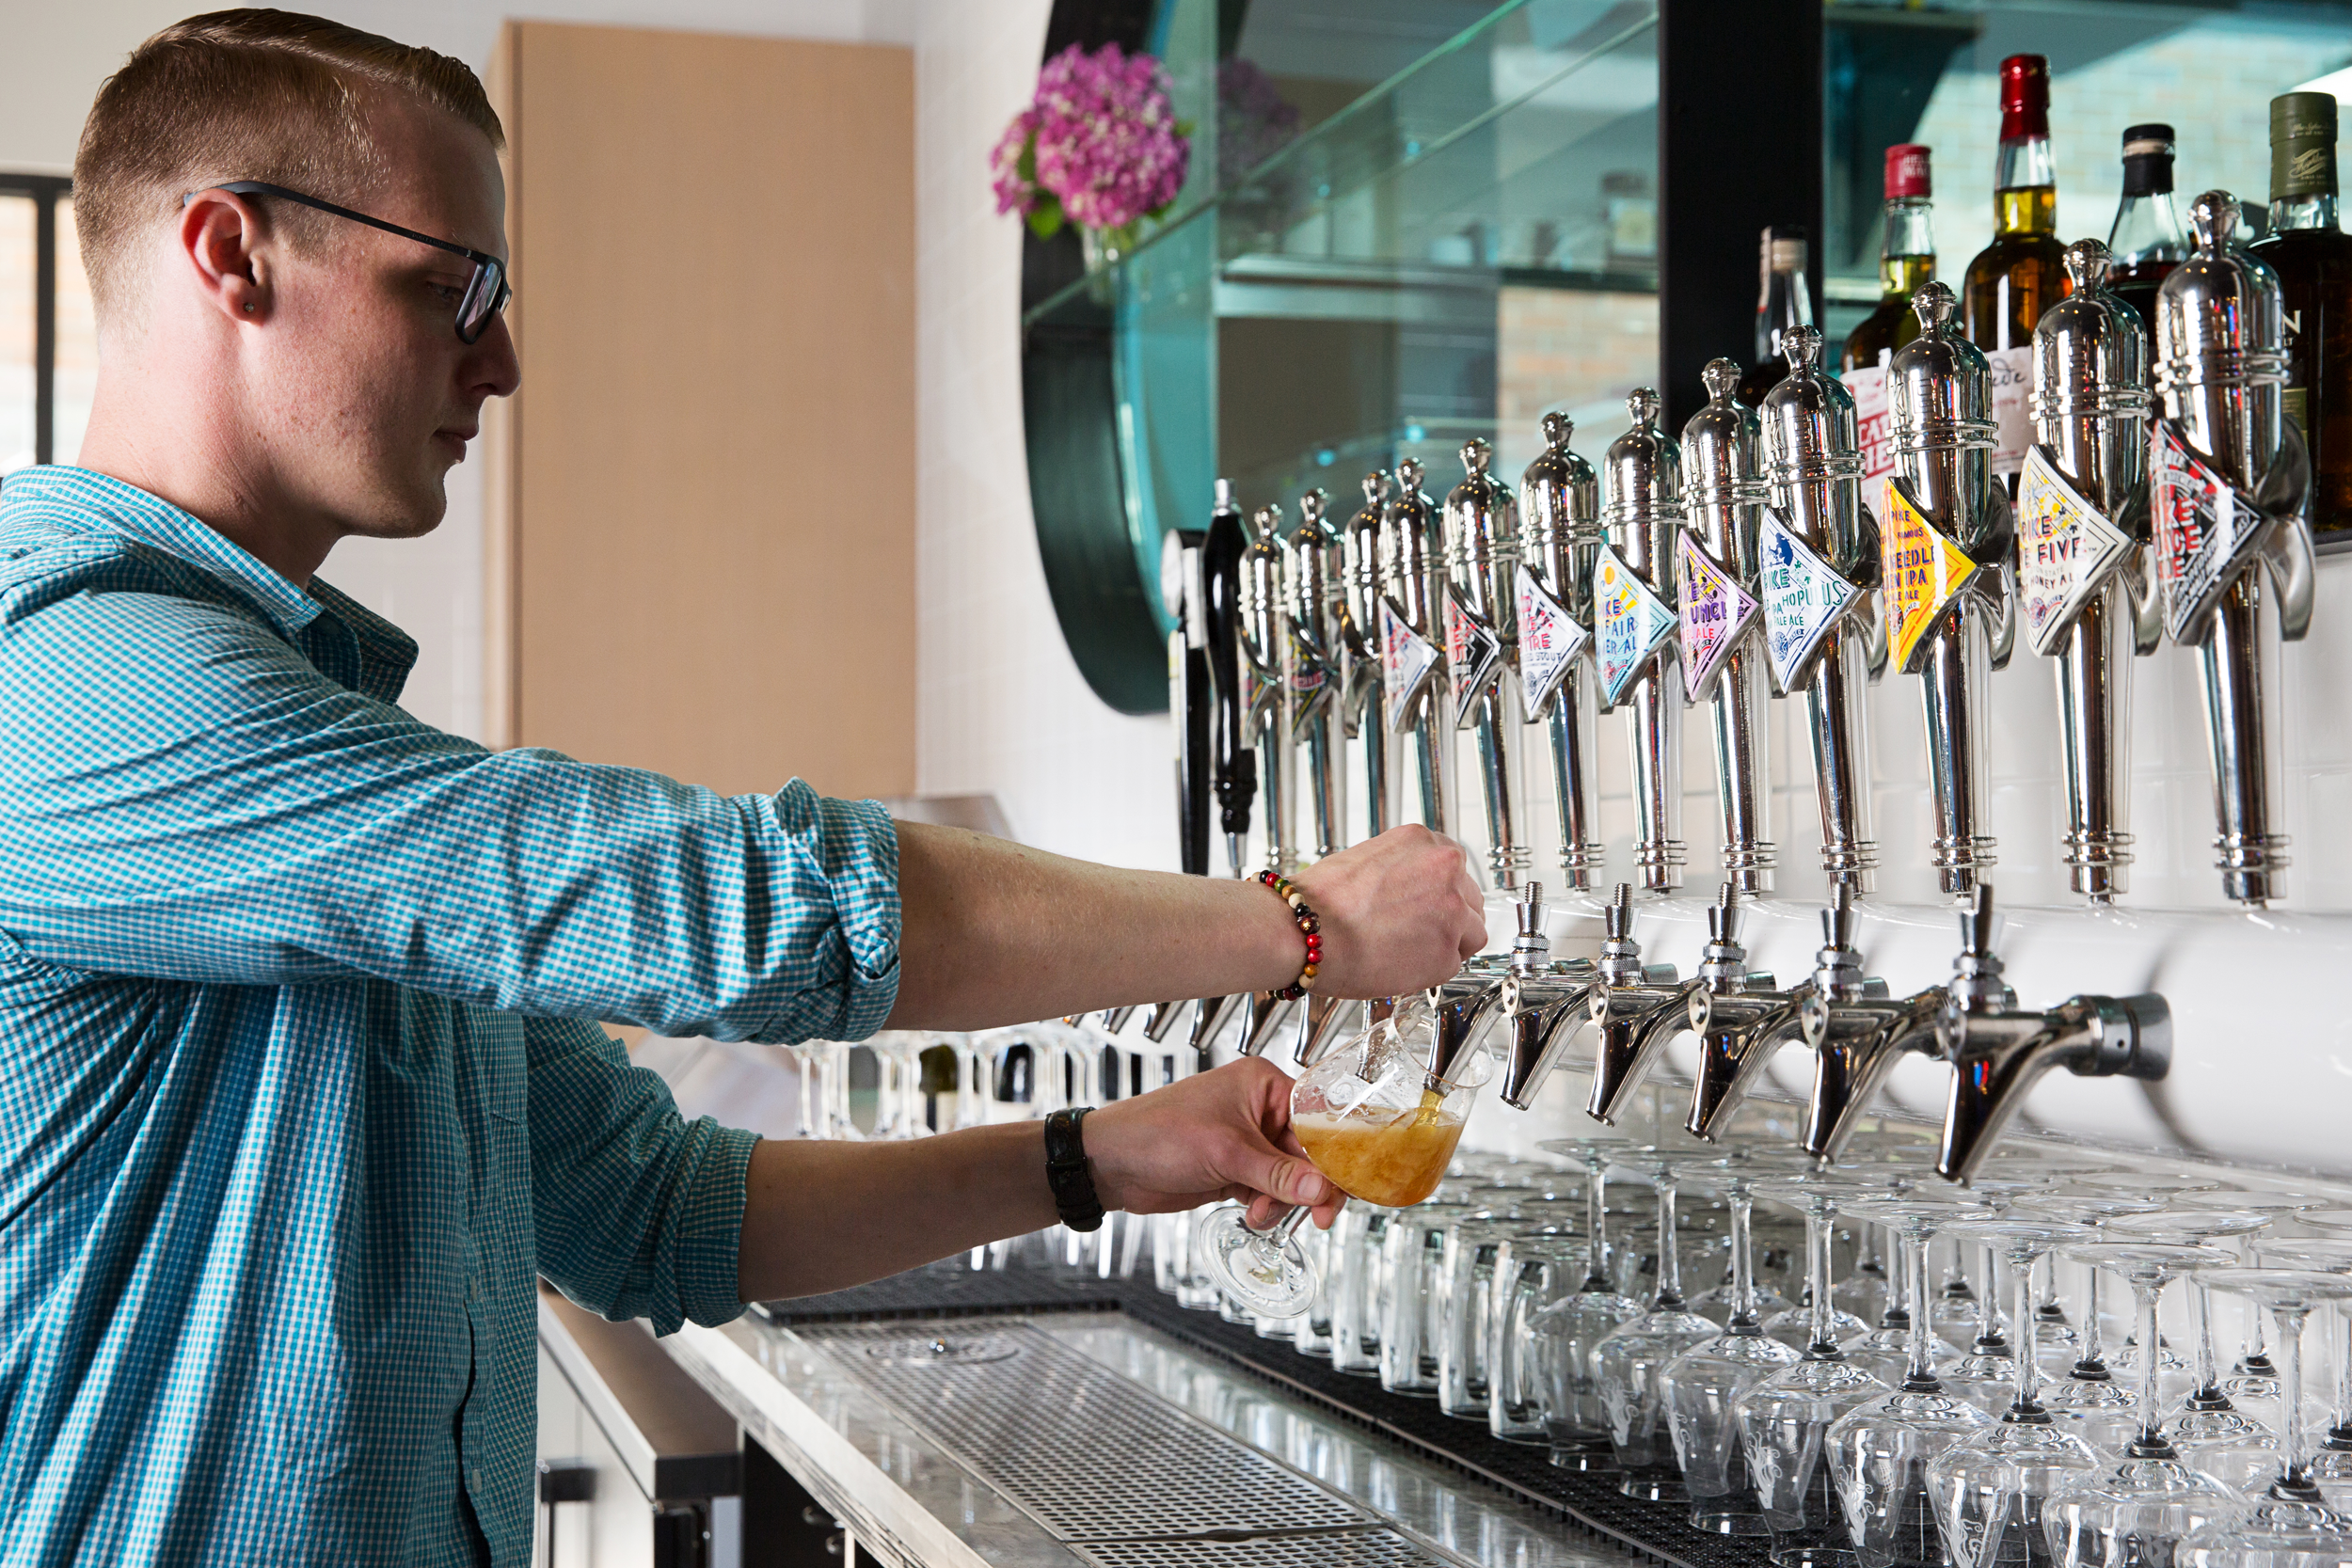 Austin pouring beer